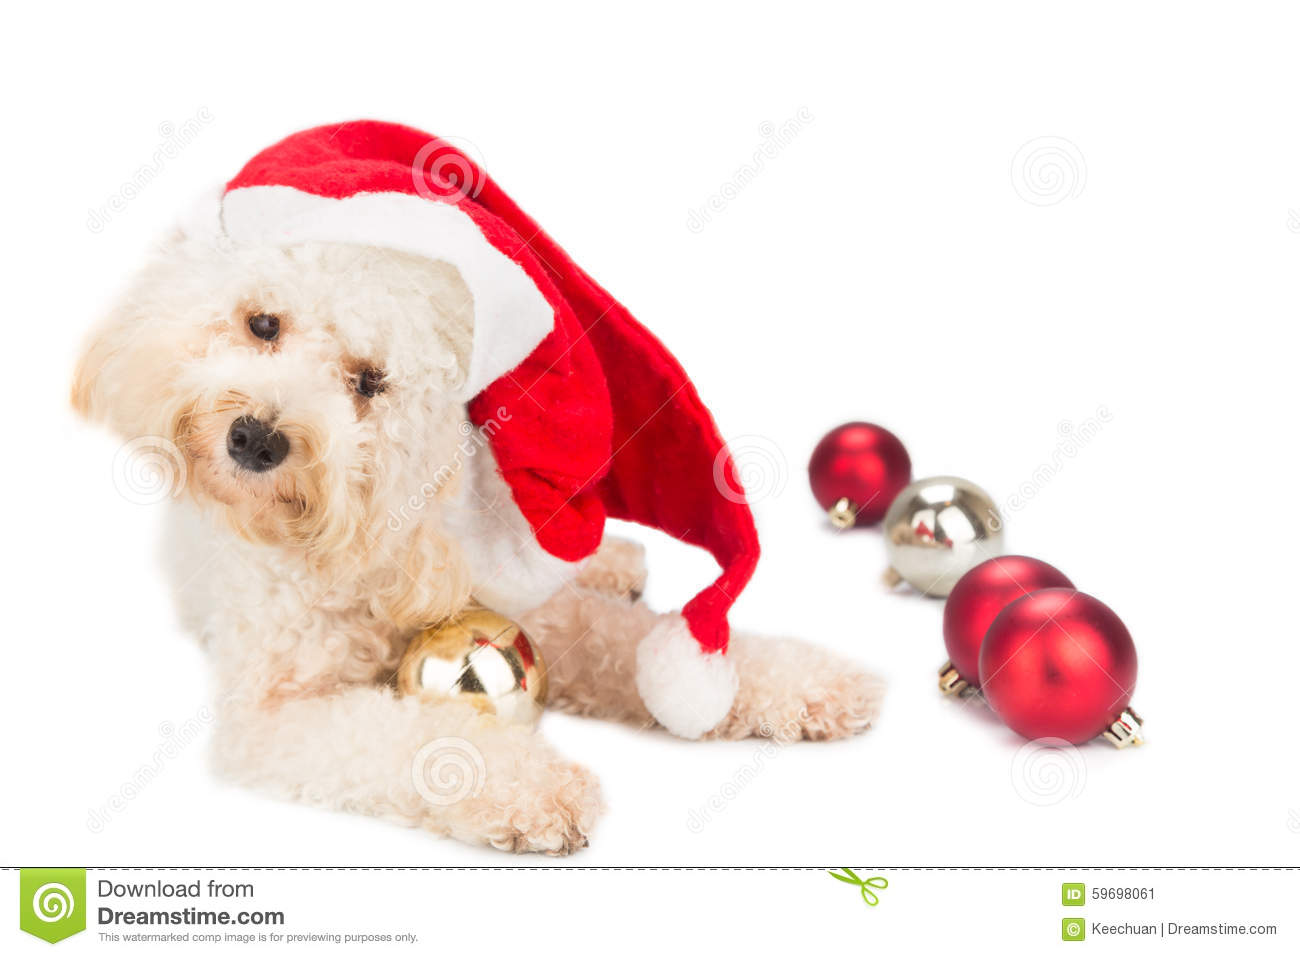 Maltese christmas ornaments - Adorable Poodle Dog In Santa Costume Posing With Christmas Ornam